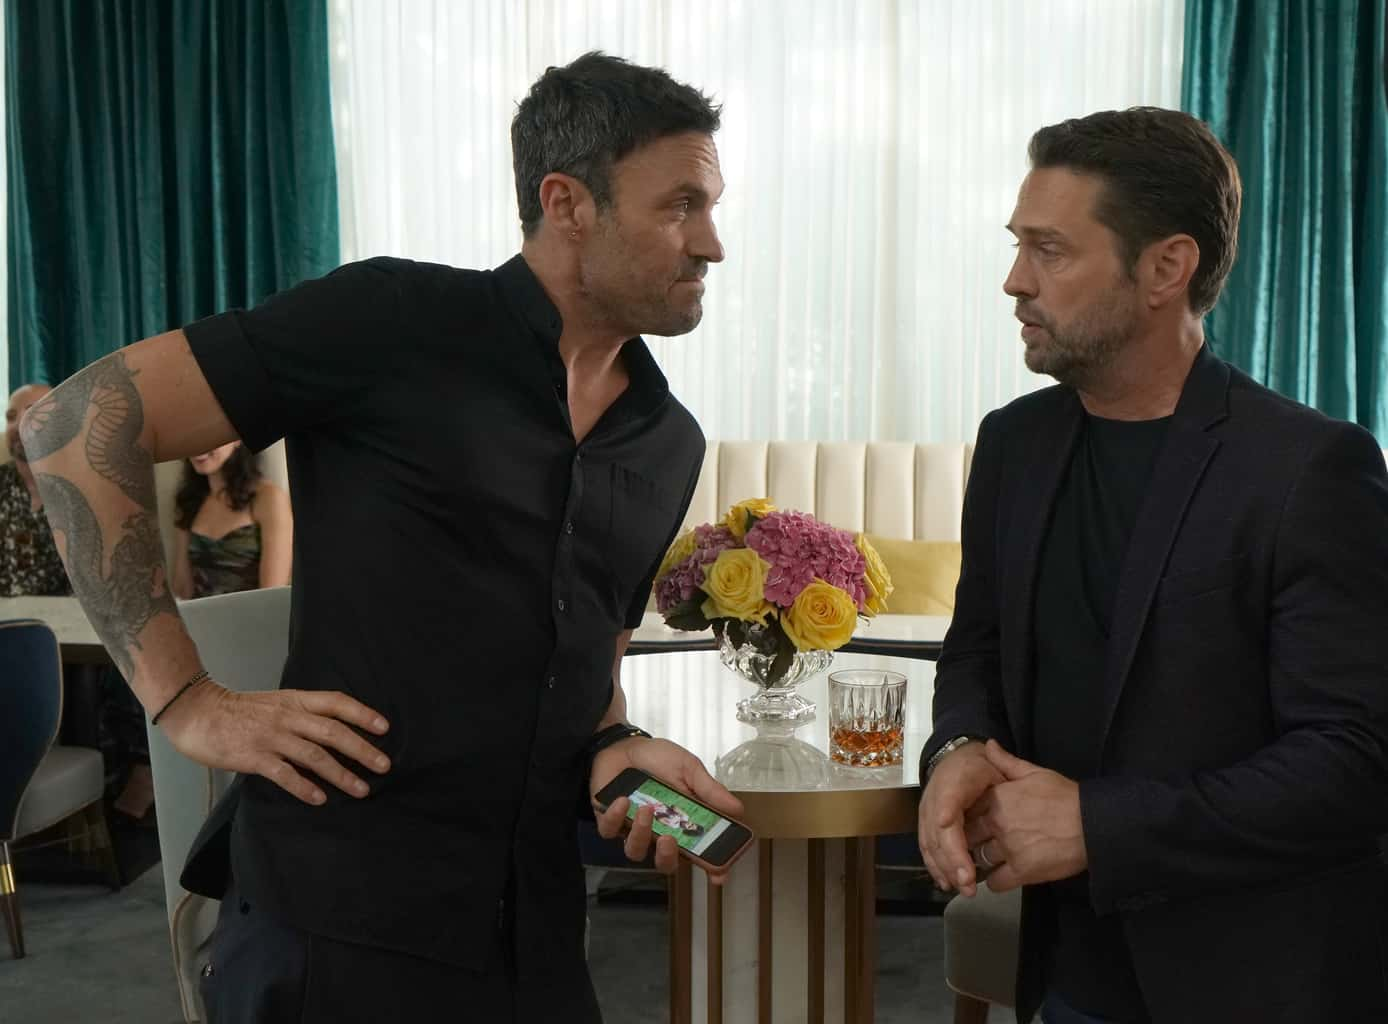 Preview — BH90210 Season 1 Episode 6: The Long Wait | Tell